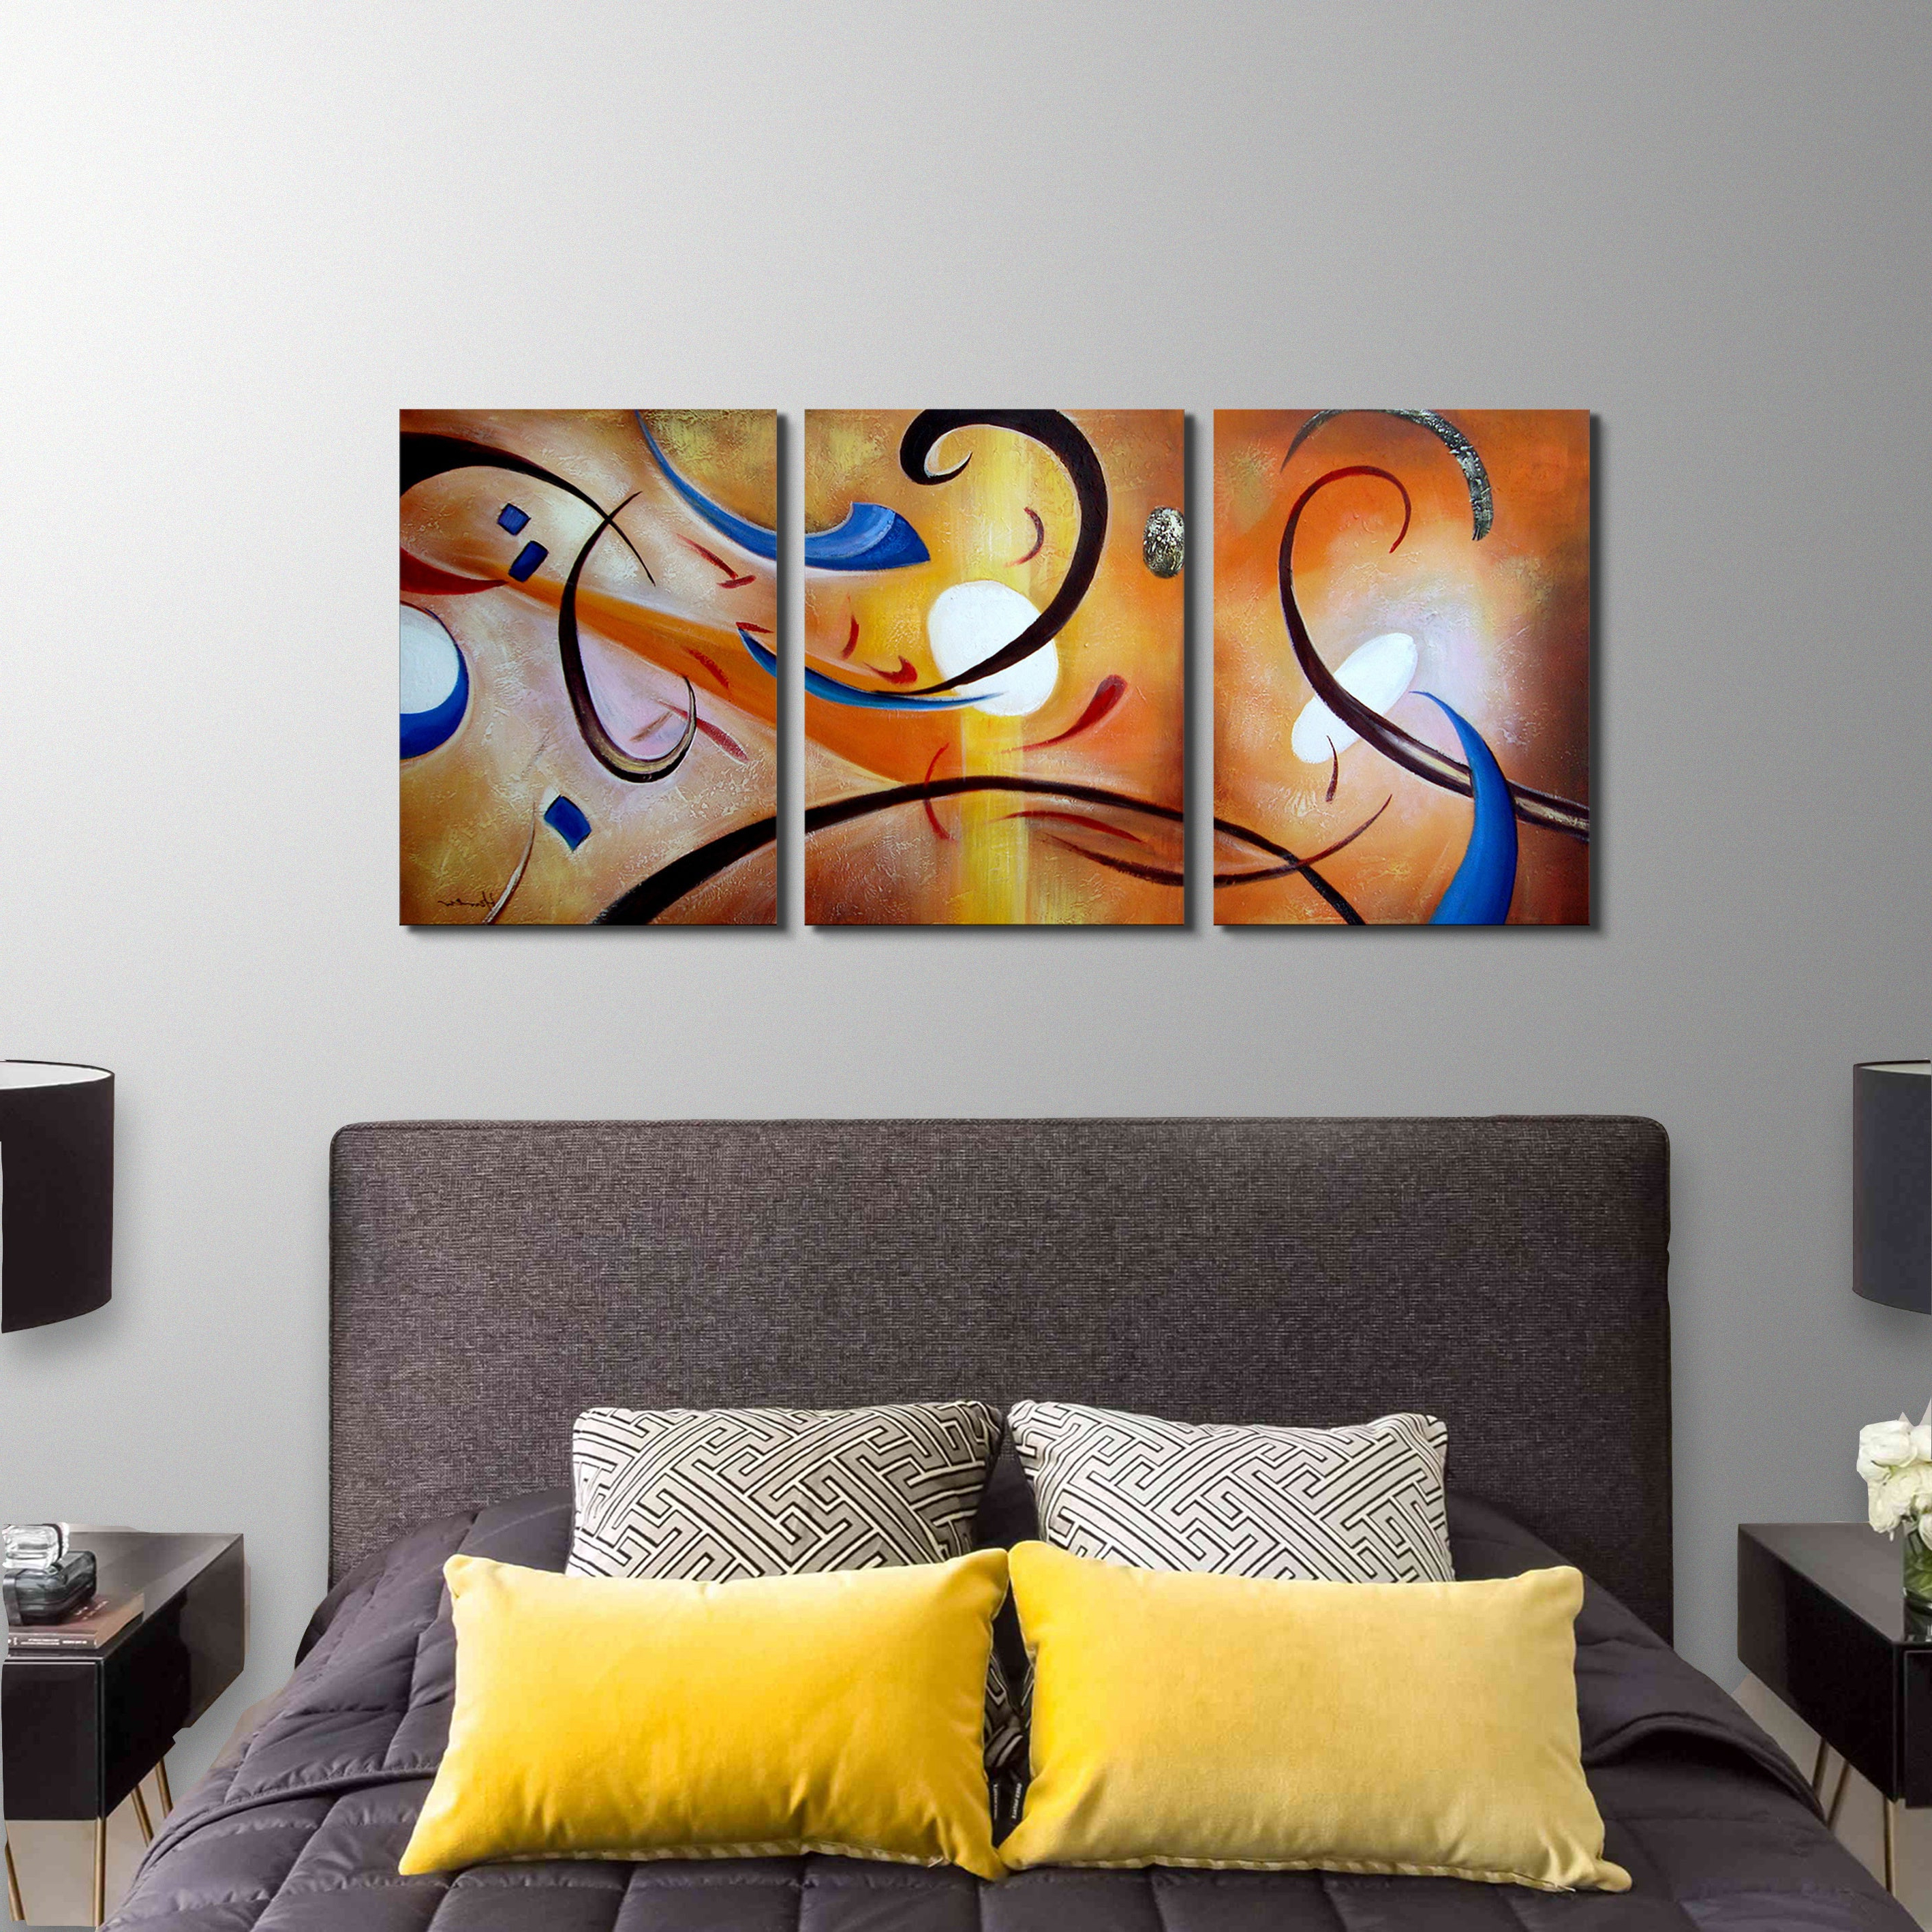 Find Great Art Gallery Deals Shopping At Overstock (View 4 of 20)